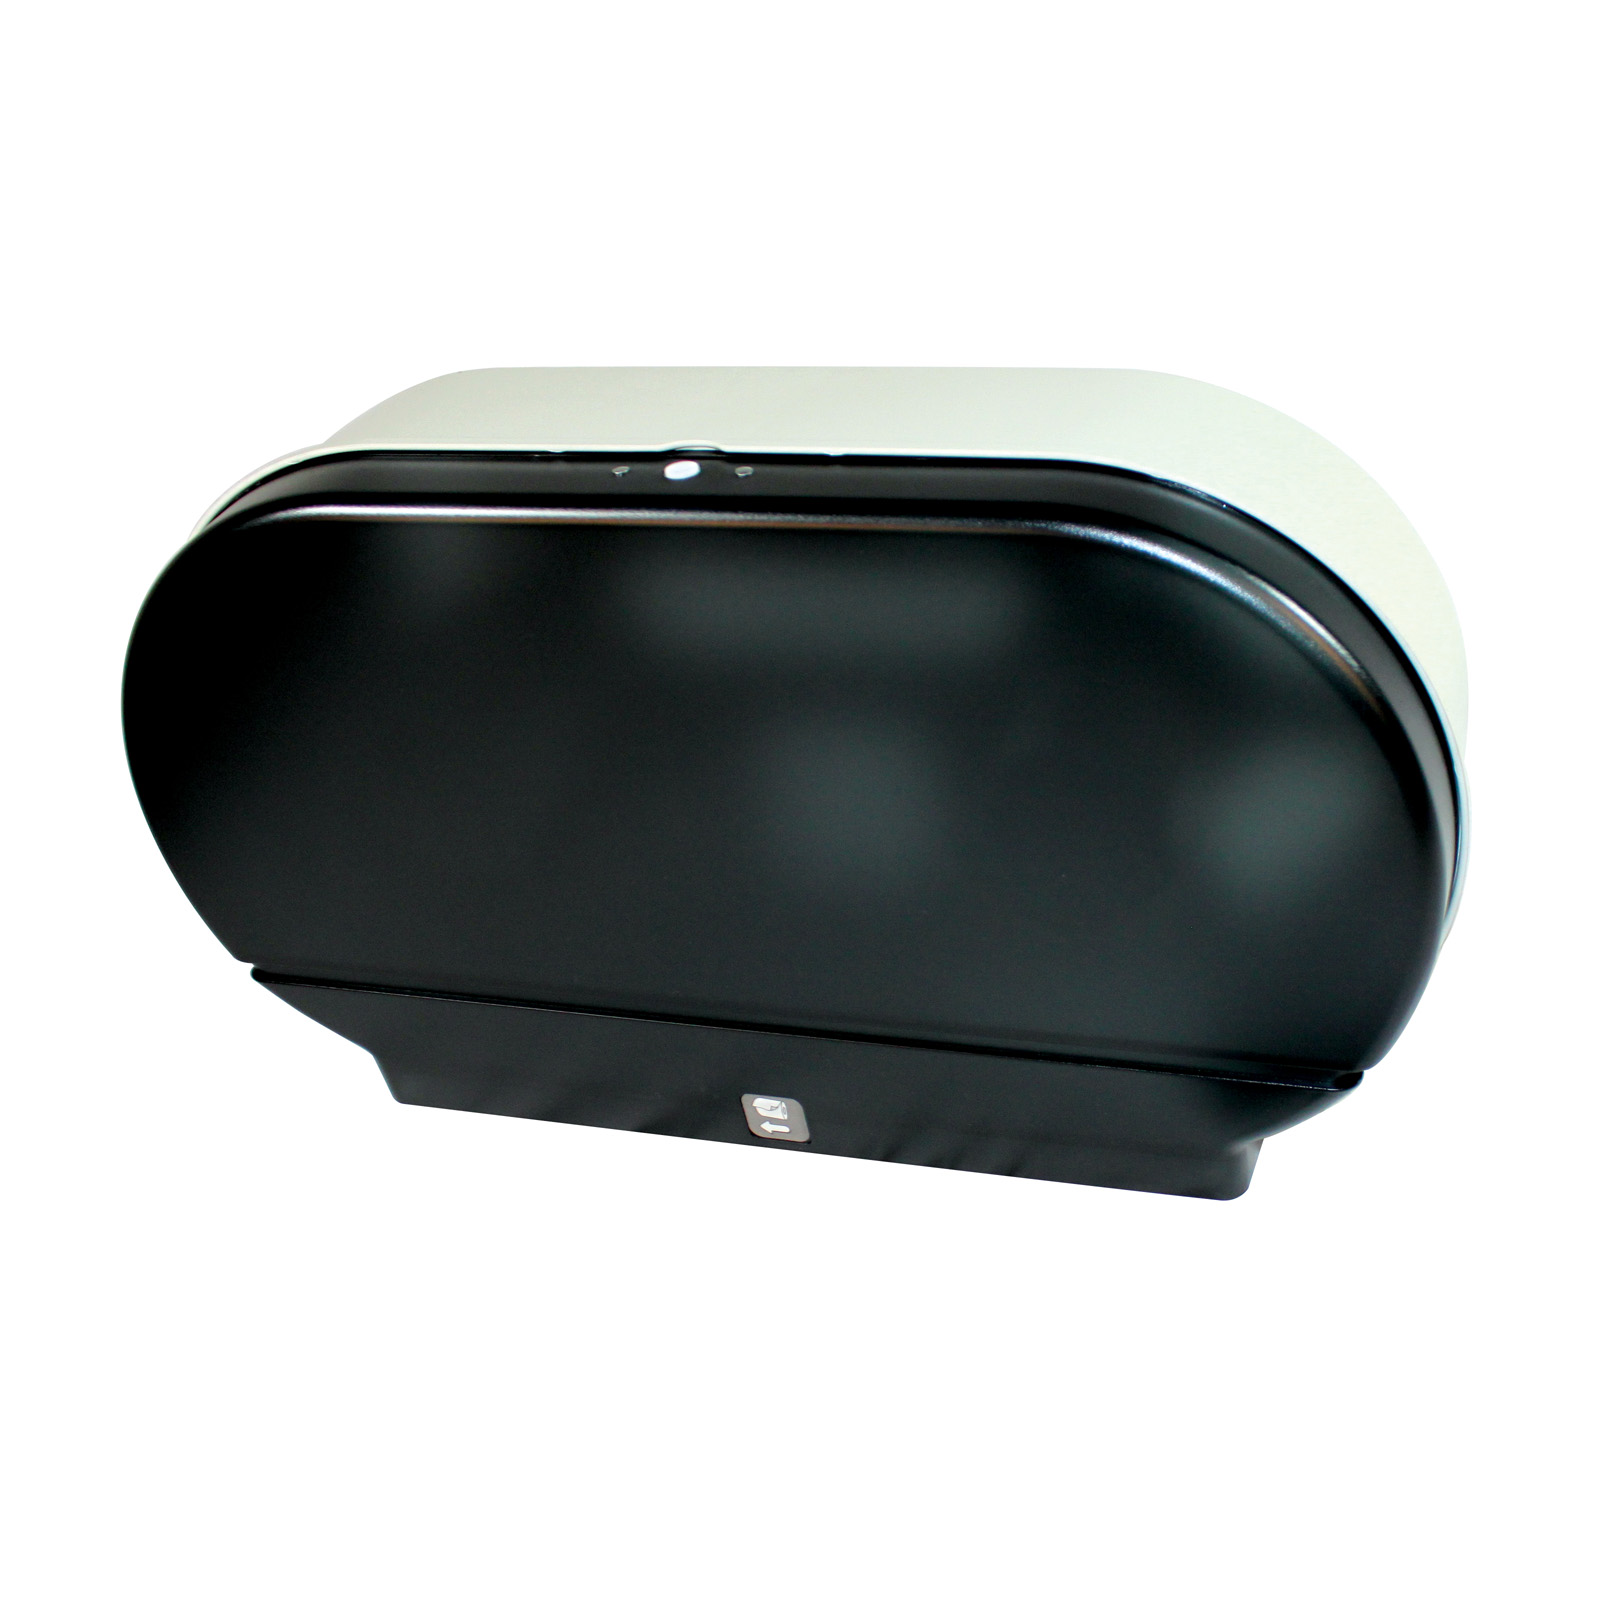 Impact Products 2529 toilet tissue dispenser